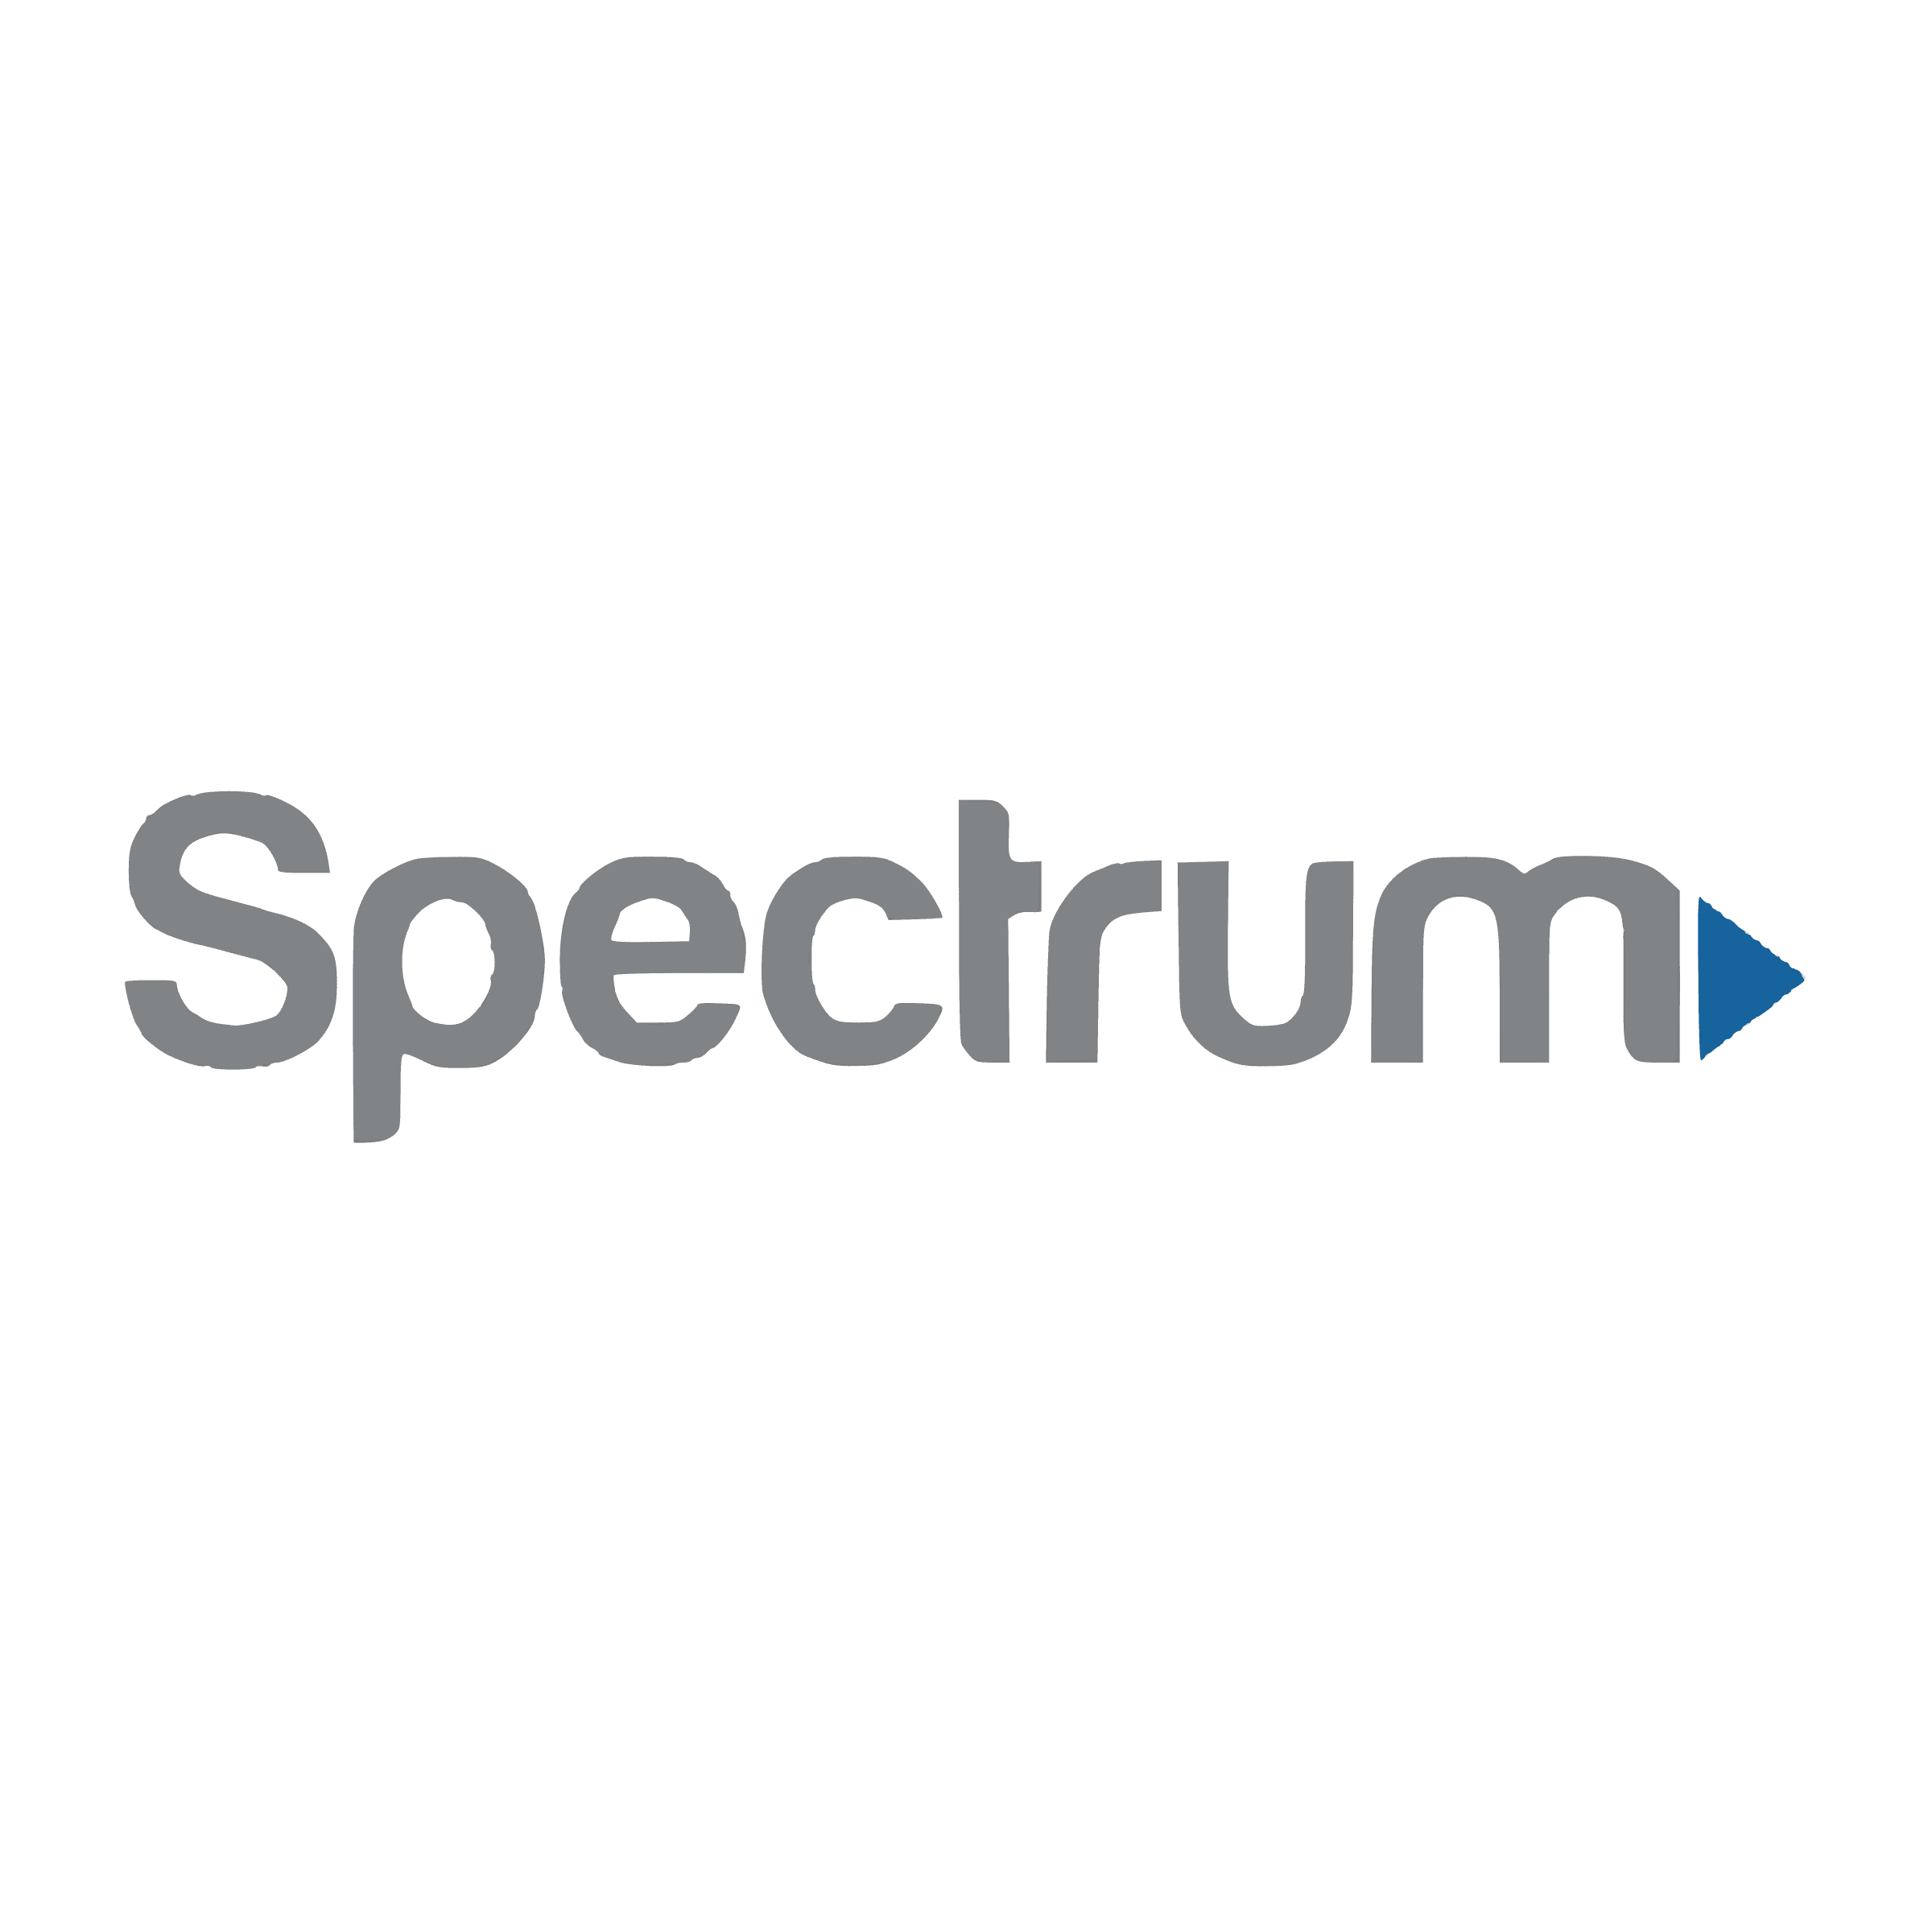 spectrum-3-logo-png-transparent